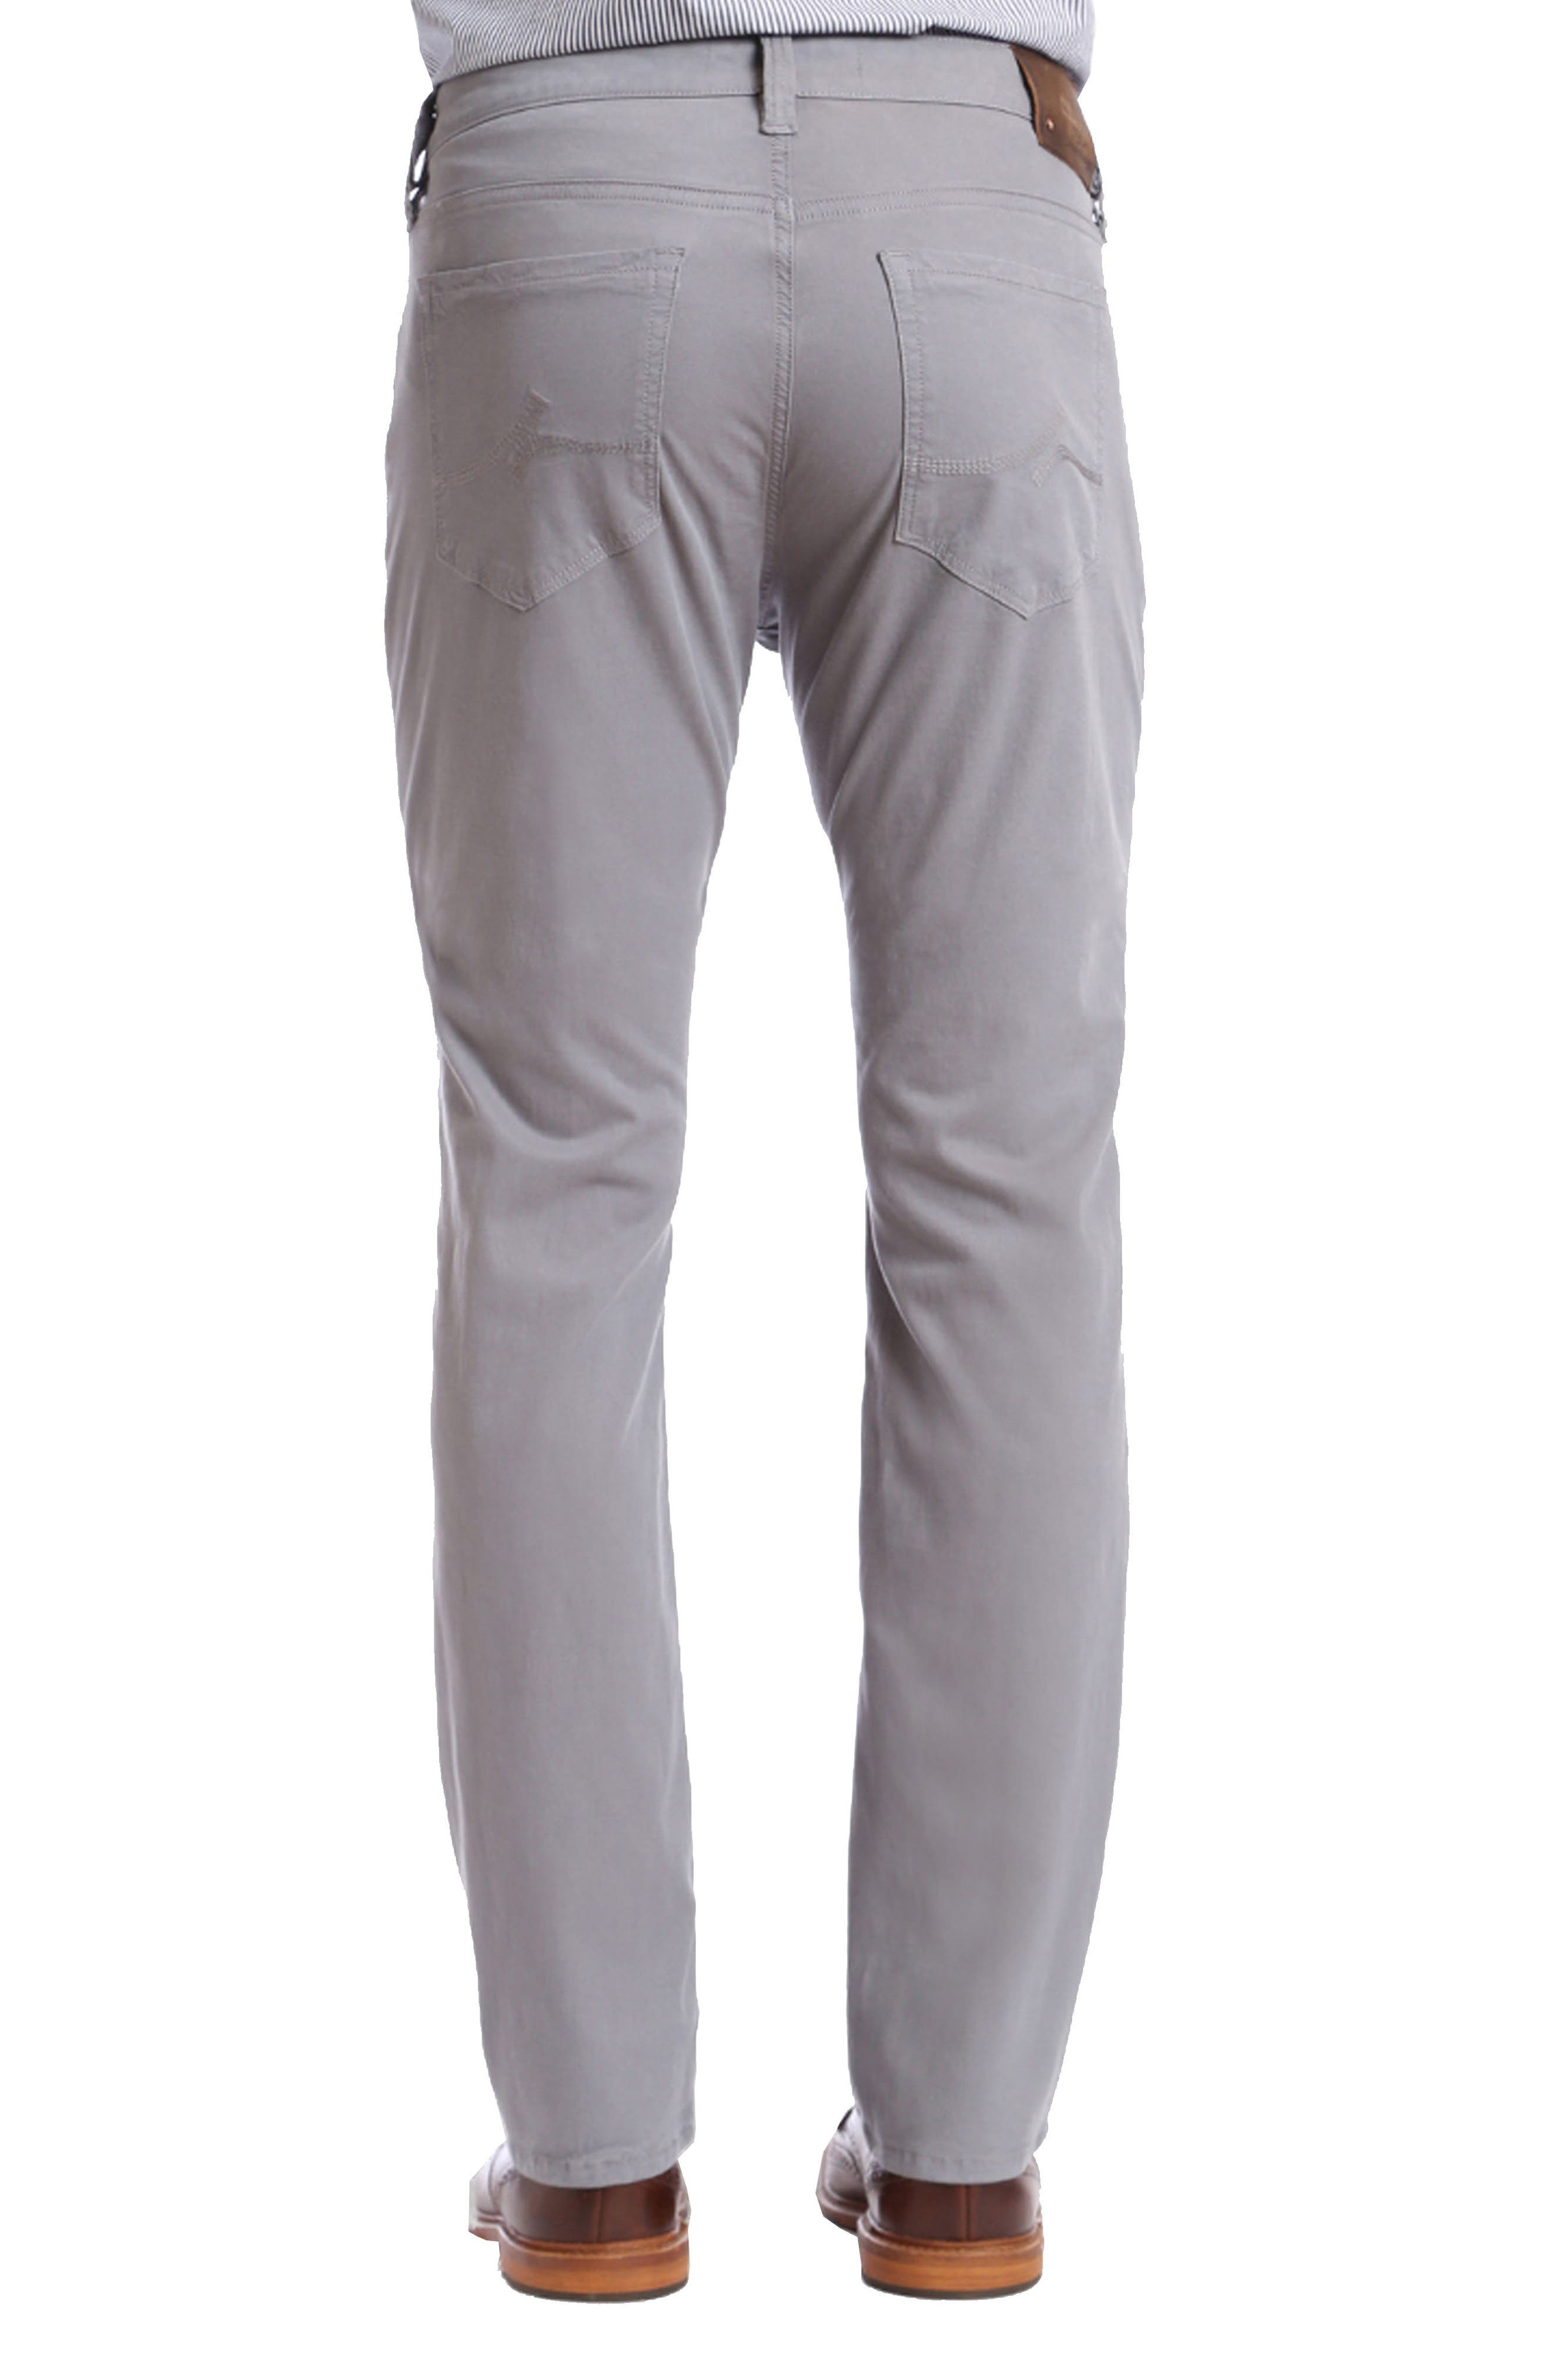 Courage Straight Leg Twill Pants,                             Alternate thumbnail 2, color,                             GREY FINE TWILL